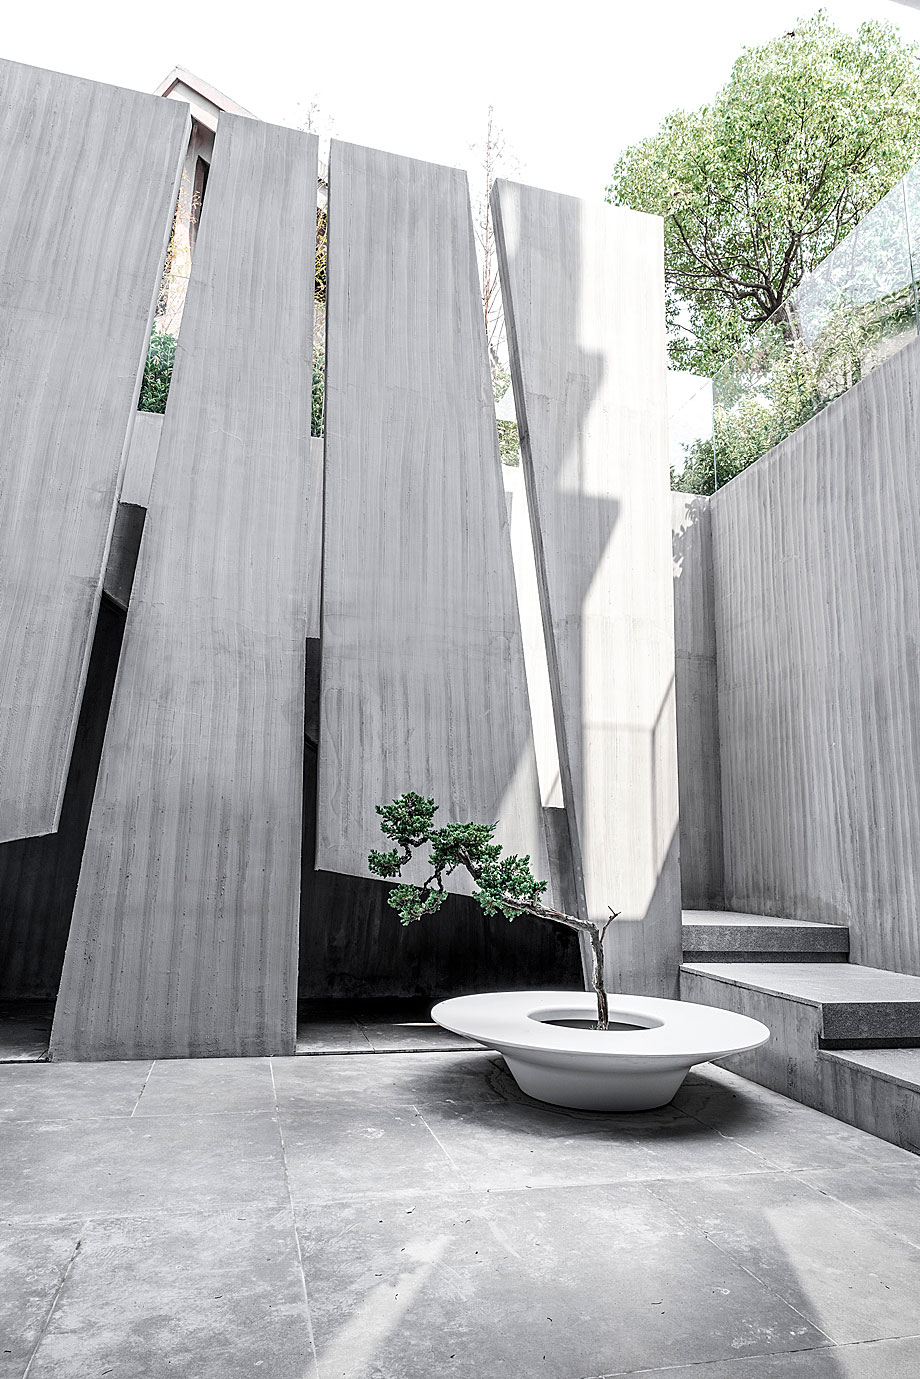 vivienda-taiwan-wei-yi-international-design-associates (21)